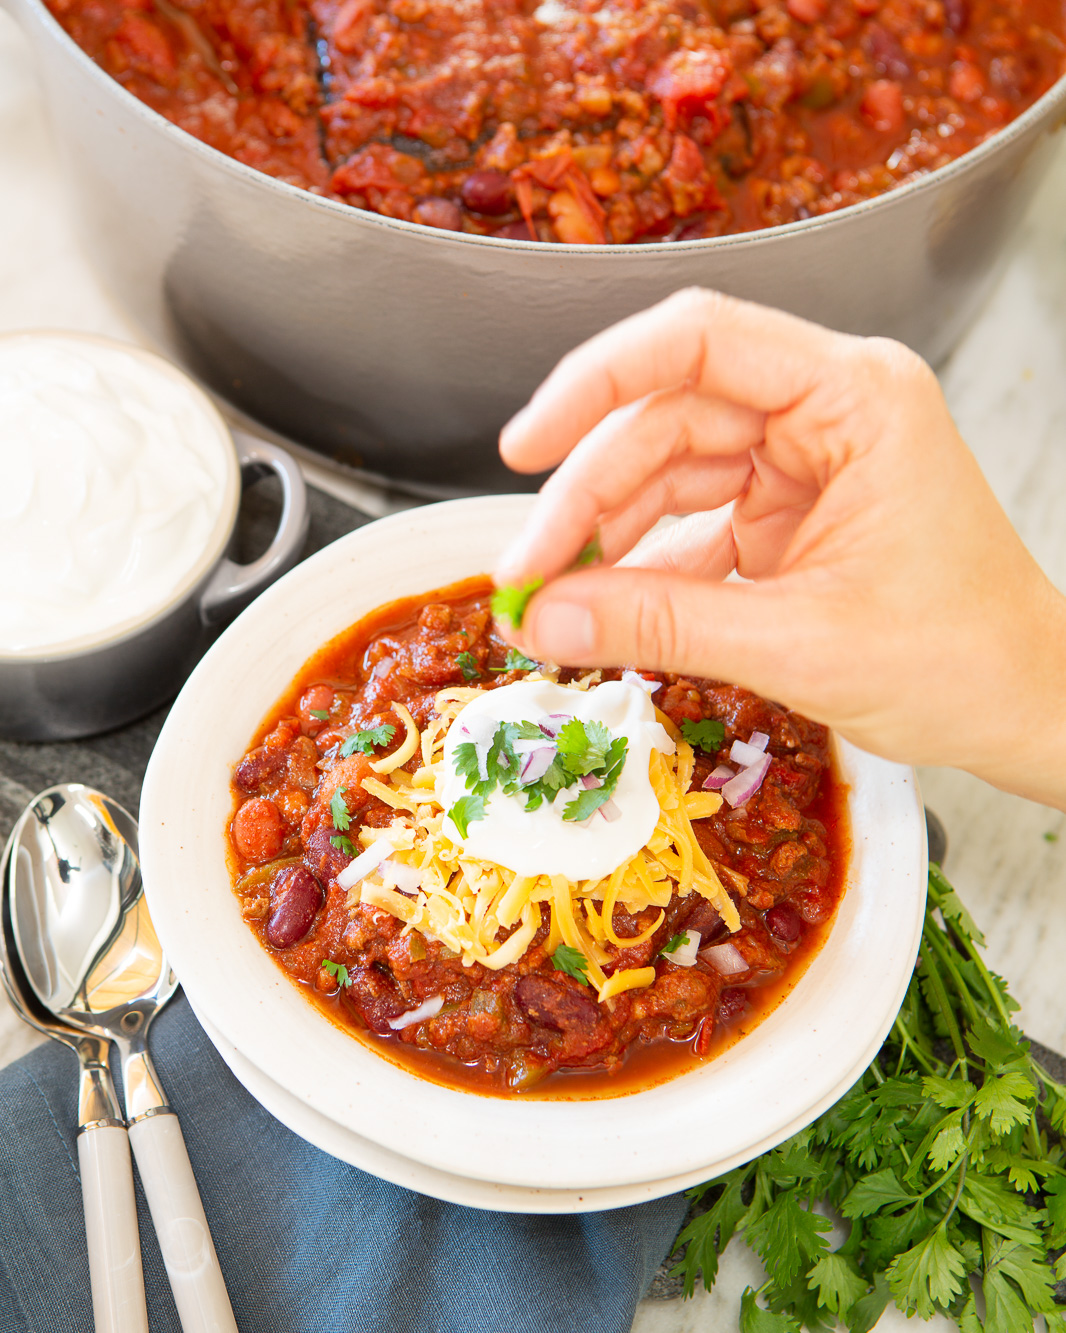 A hot bowl of chile and beans with cheese, red onions, cilantro and sour cream. A woman's hand is placing the final garnish in preparation of serving. A big pot of chile is in the background.